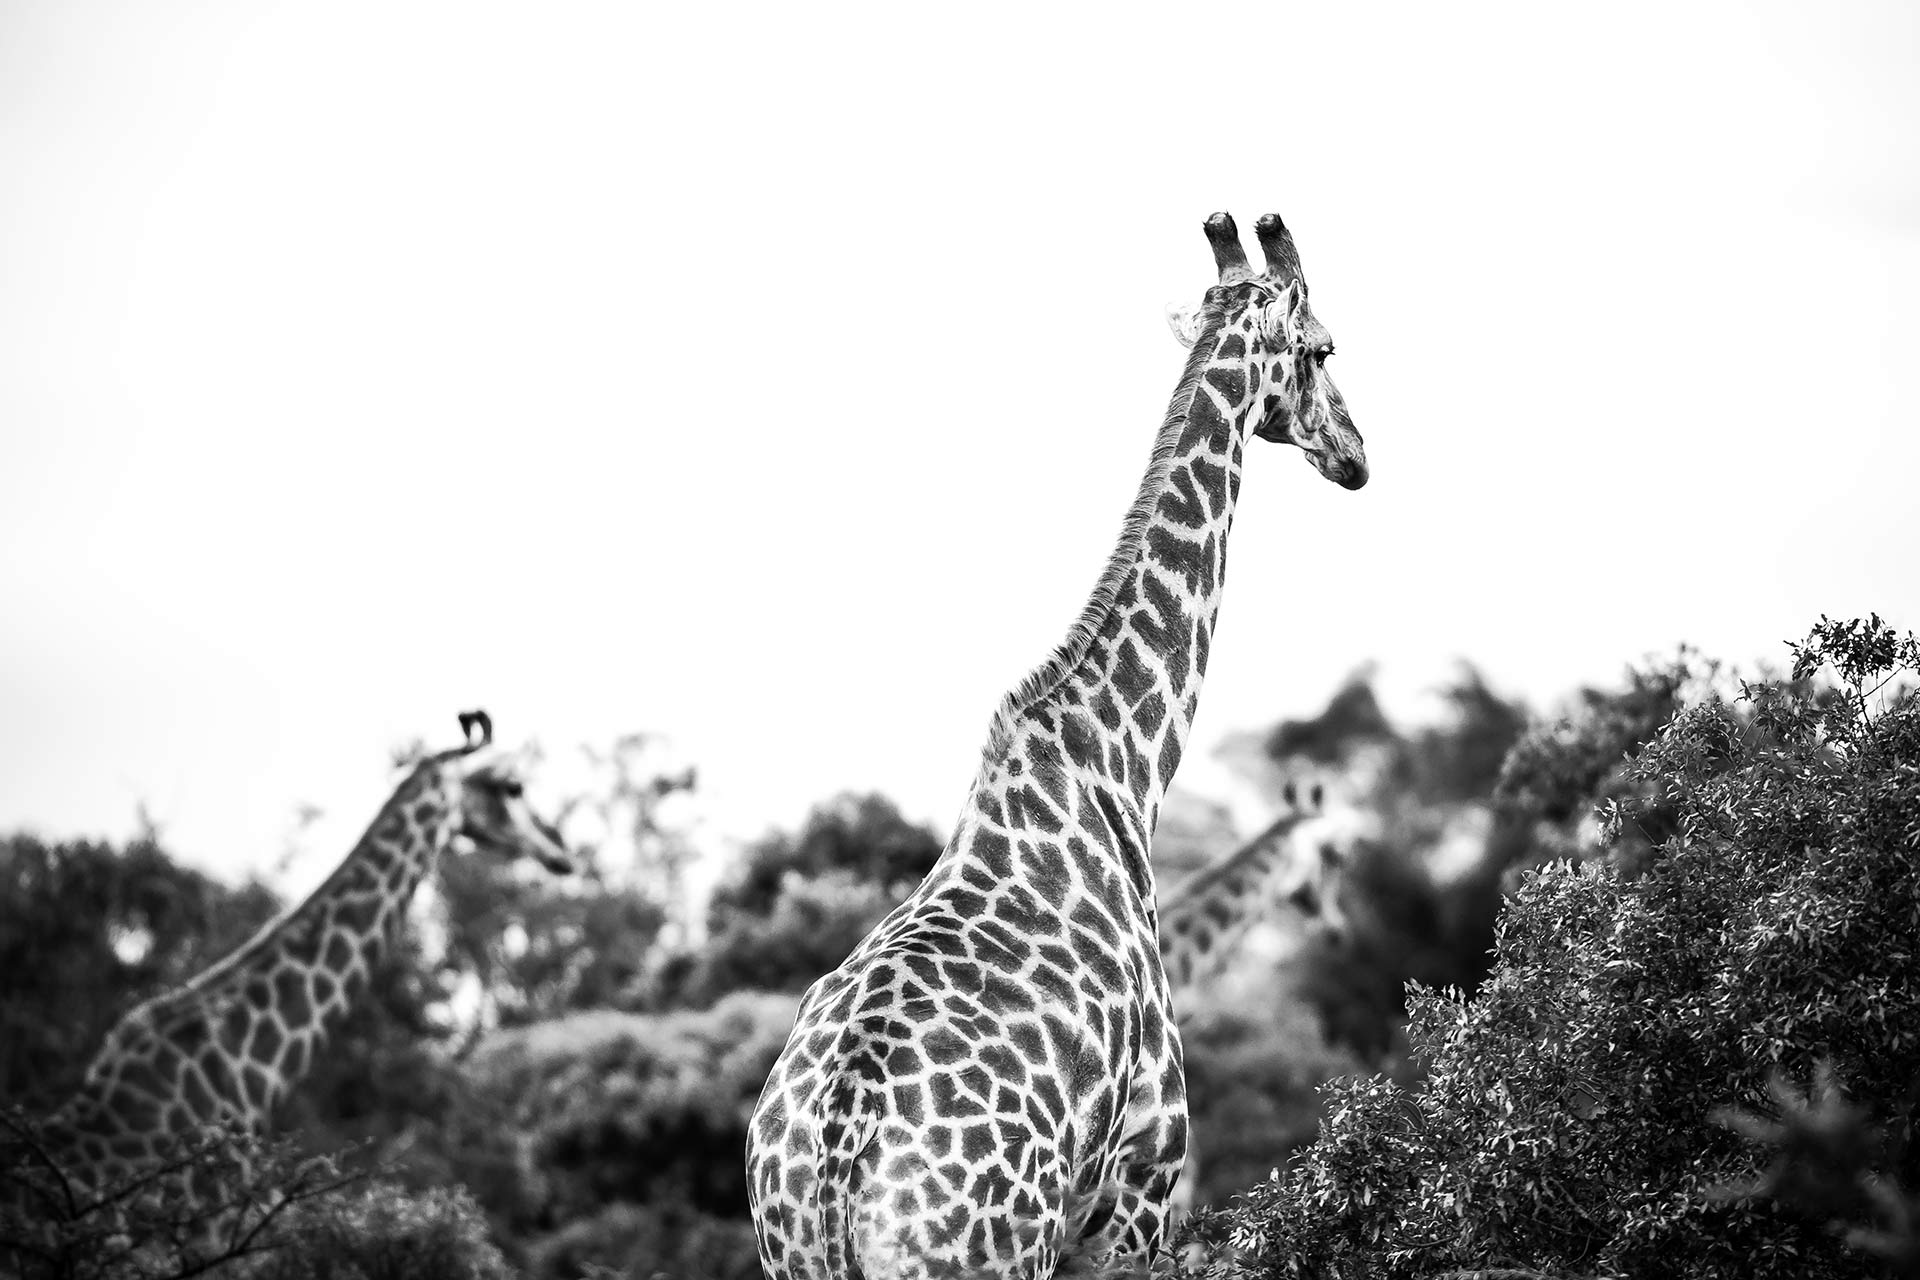 Giraffes at Rhino Ridge Safari Lodge